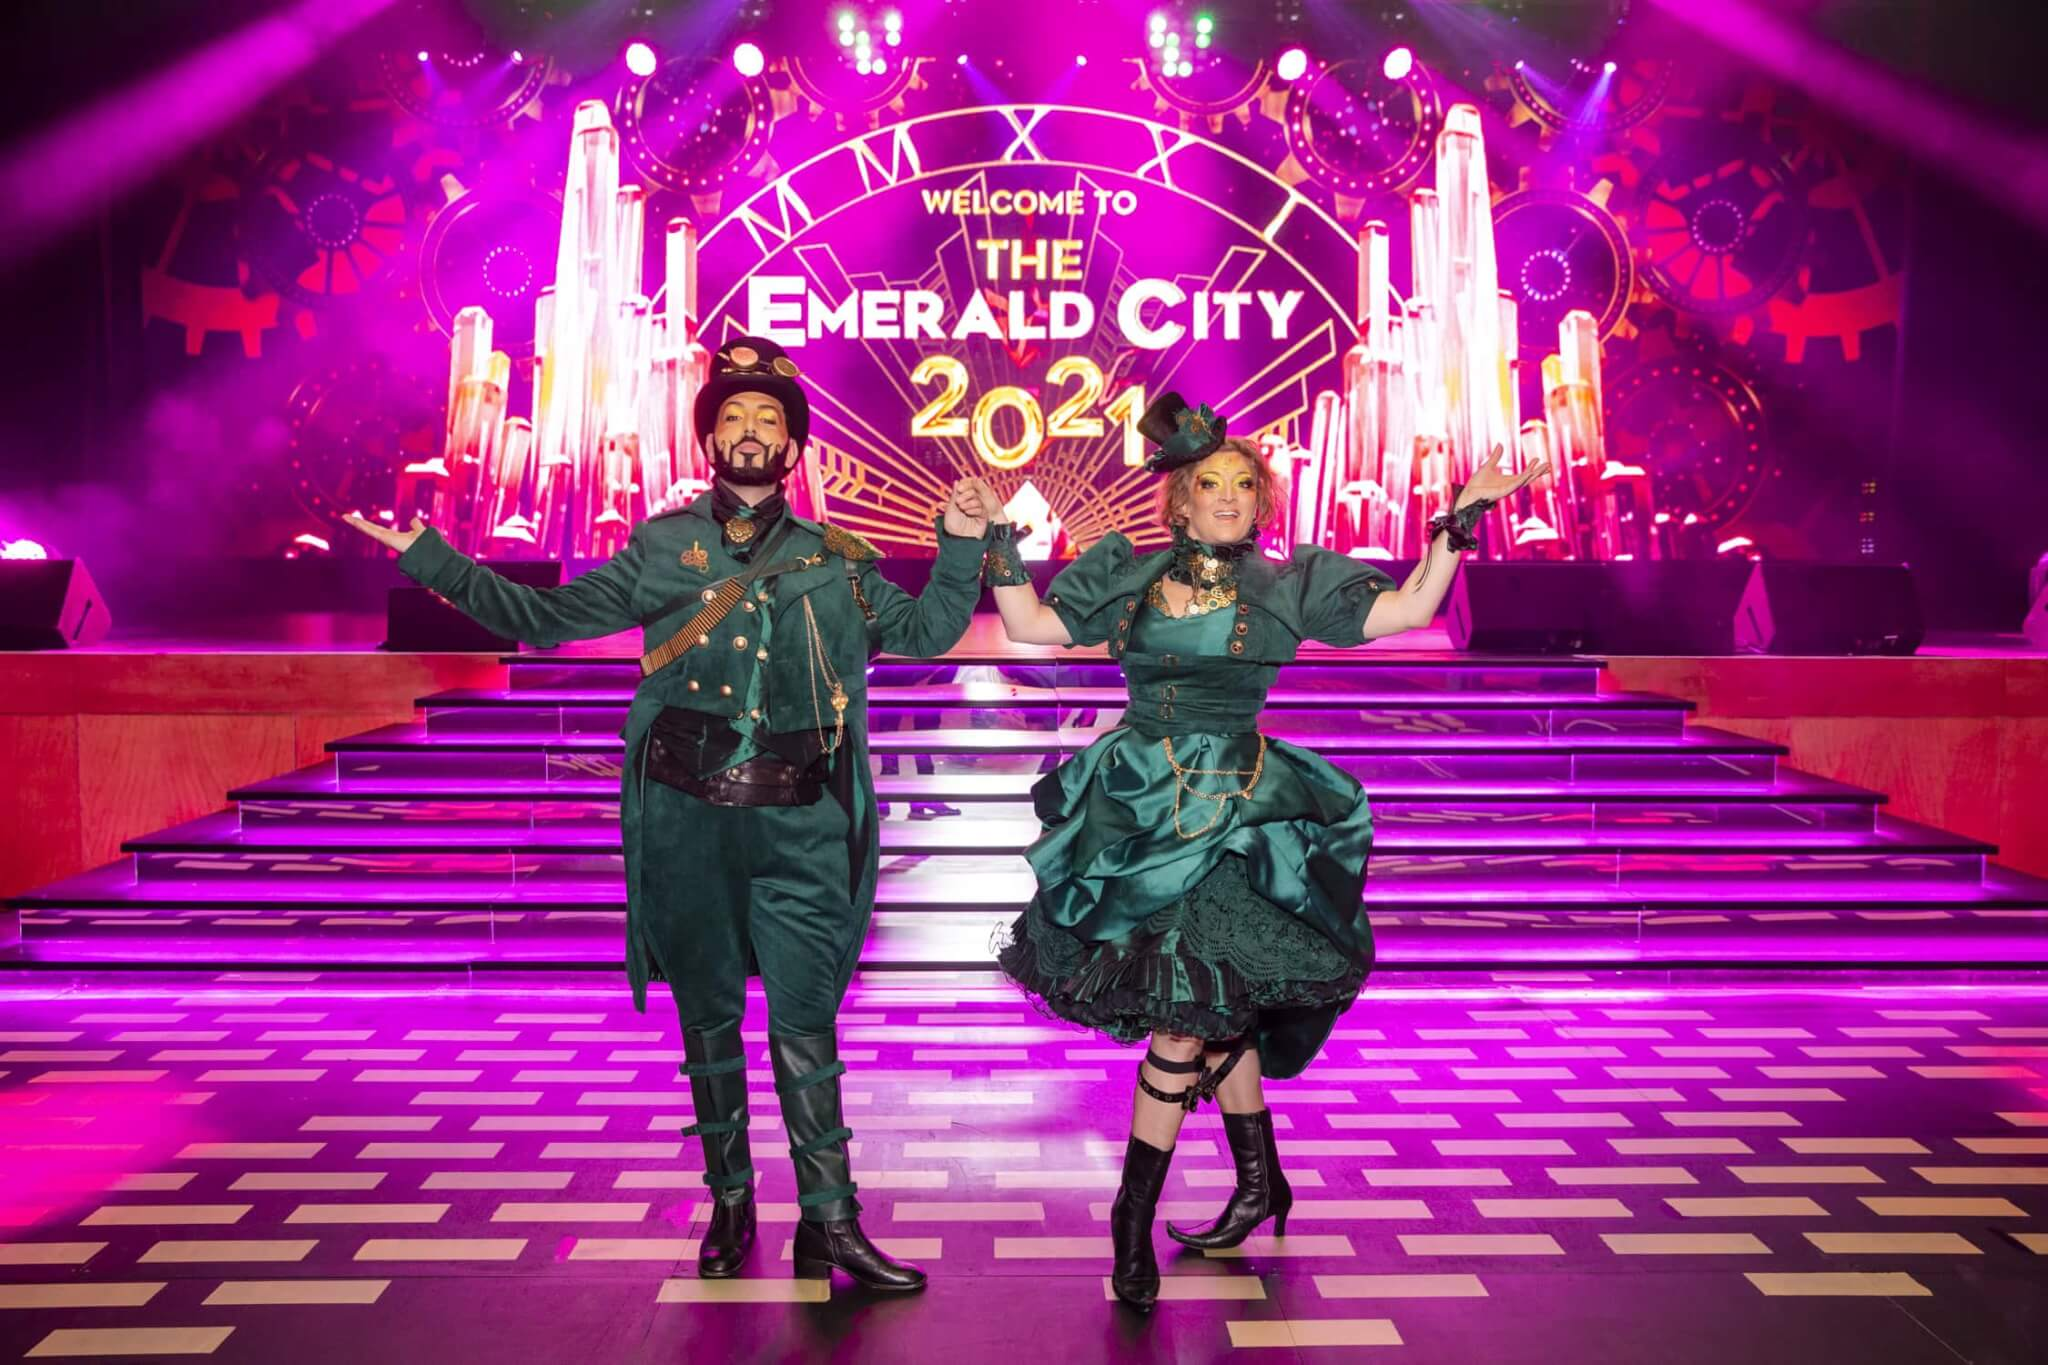 Emerald City Hosts